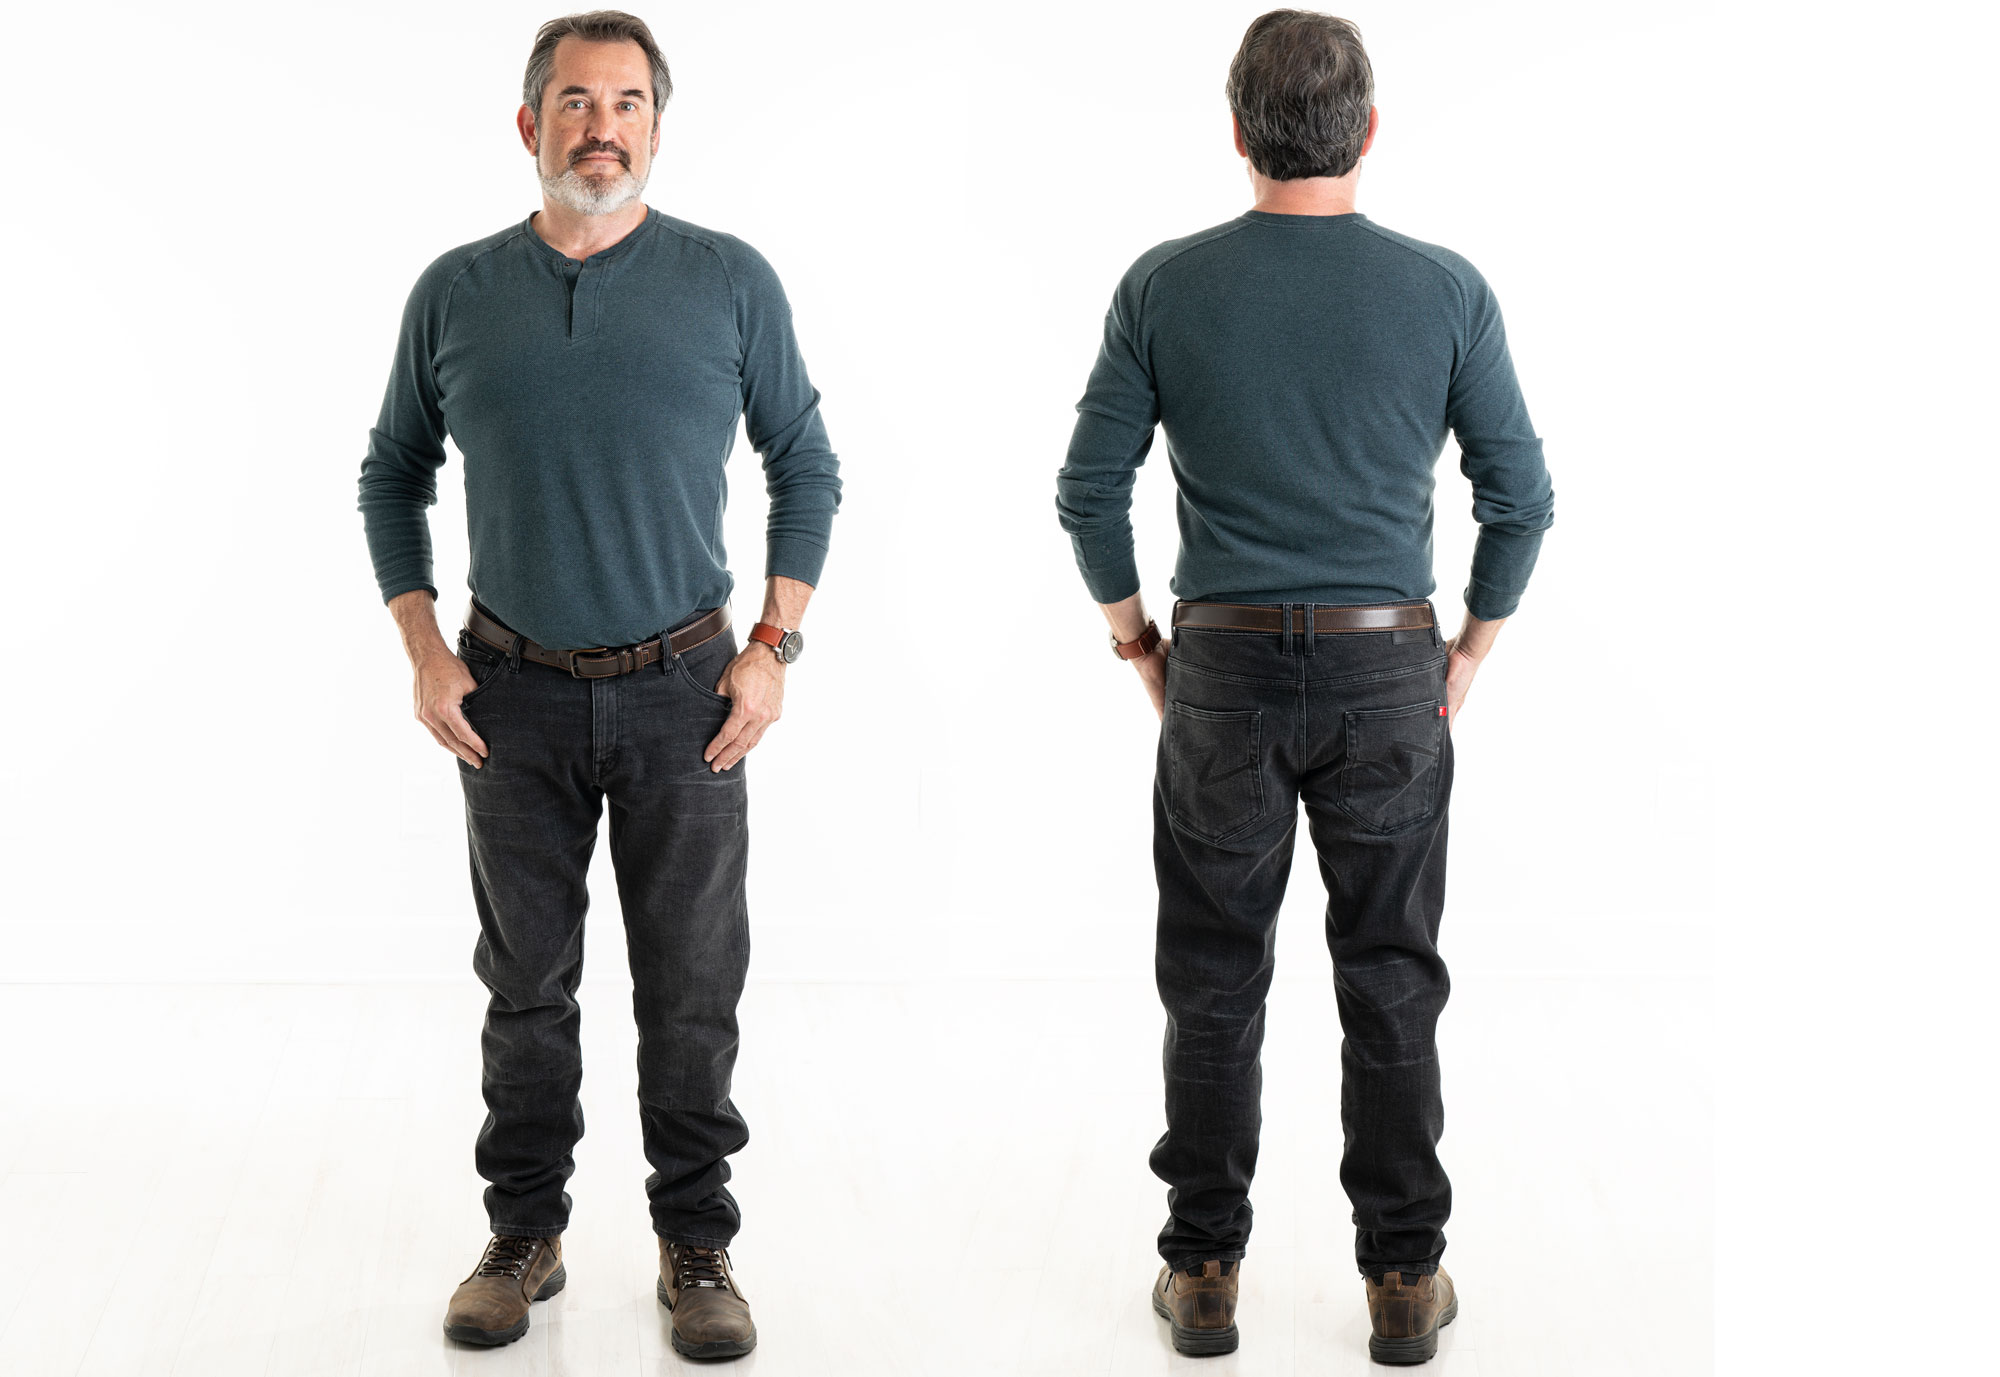 Front and rear view of the Robby Arm jeans